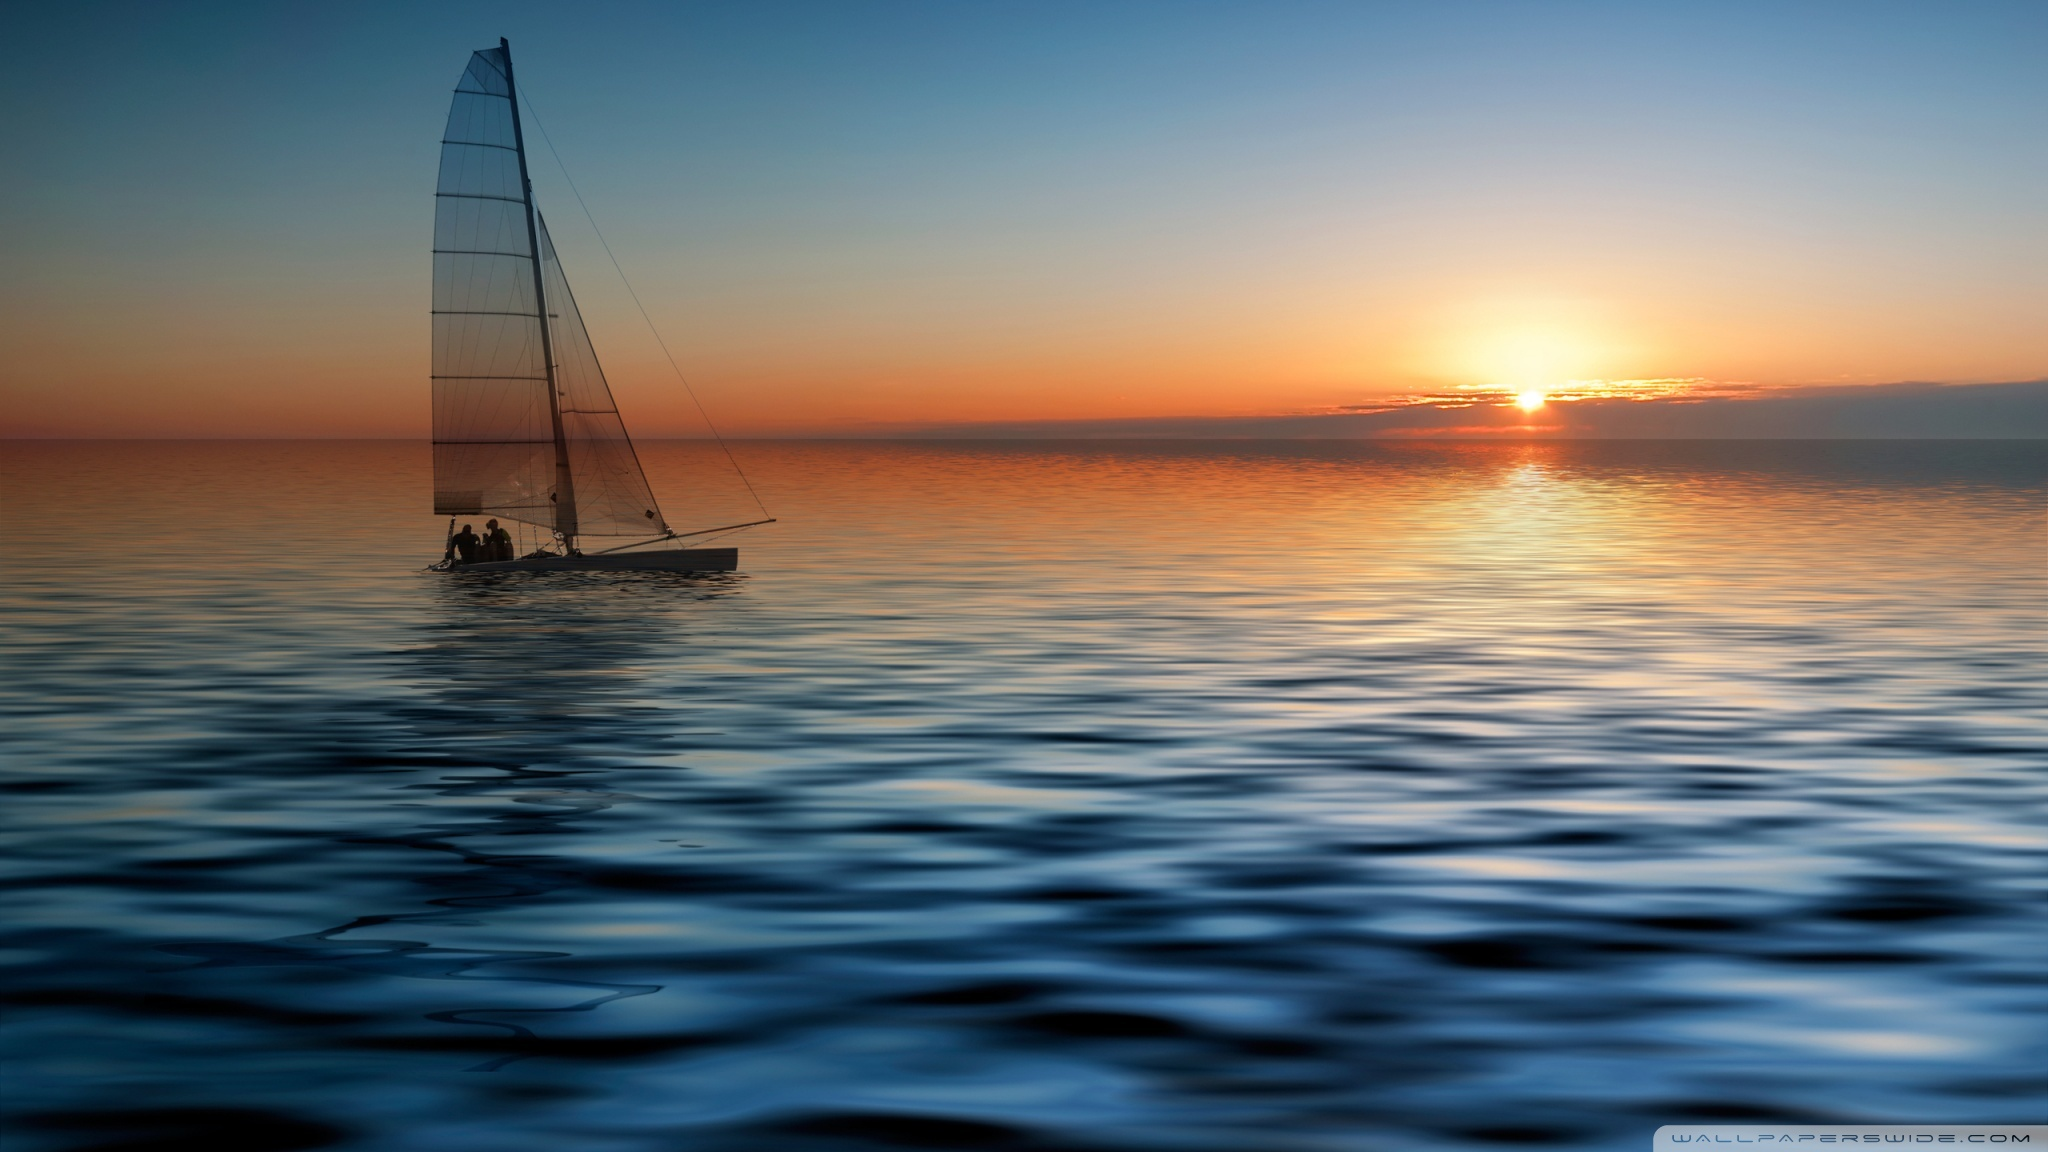 Boat At Sea 4K HD Desktop Wallpaper For Ultra TV O Wide